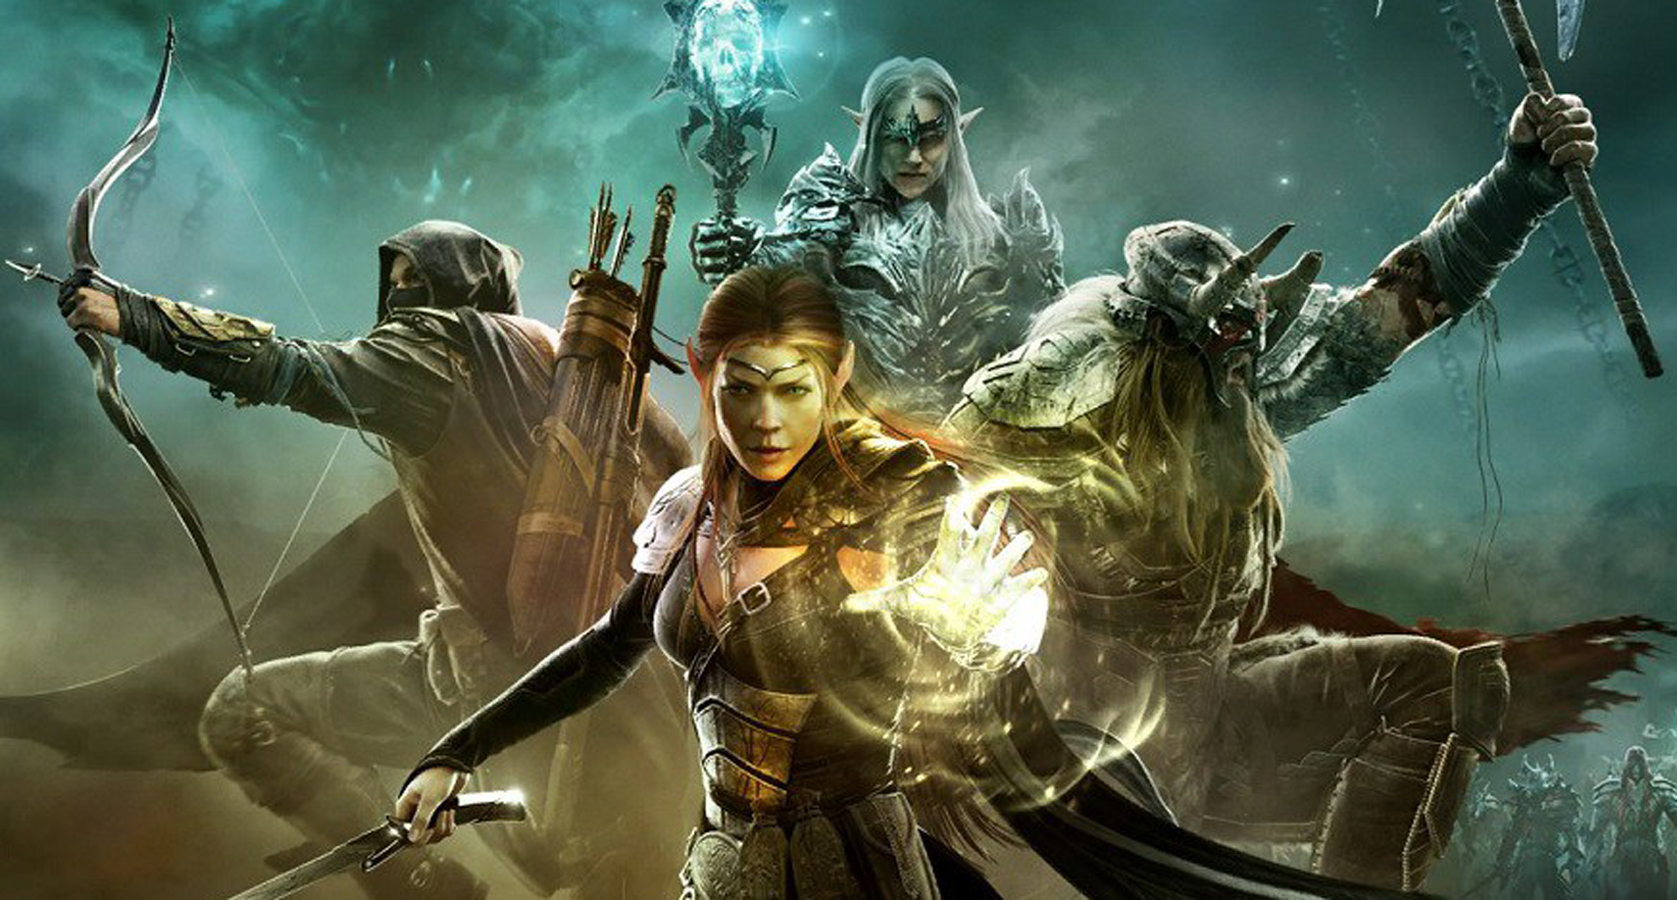 Elder Scrolls 6 Probably Won't Release On PS4 and Xbox One